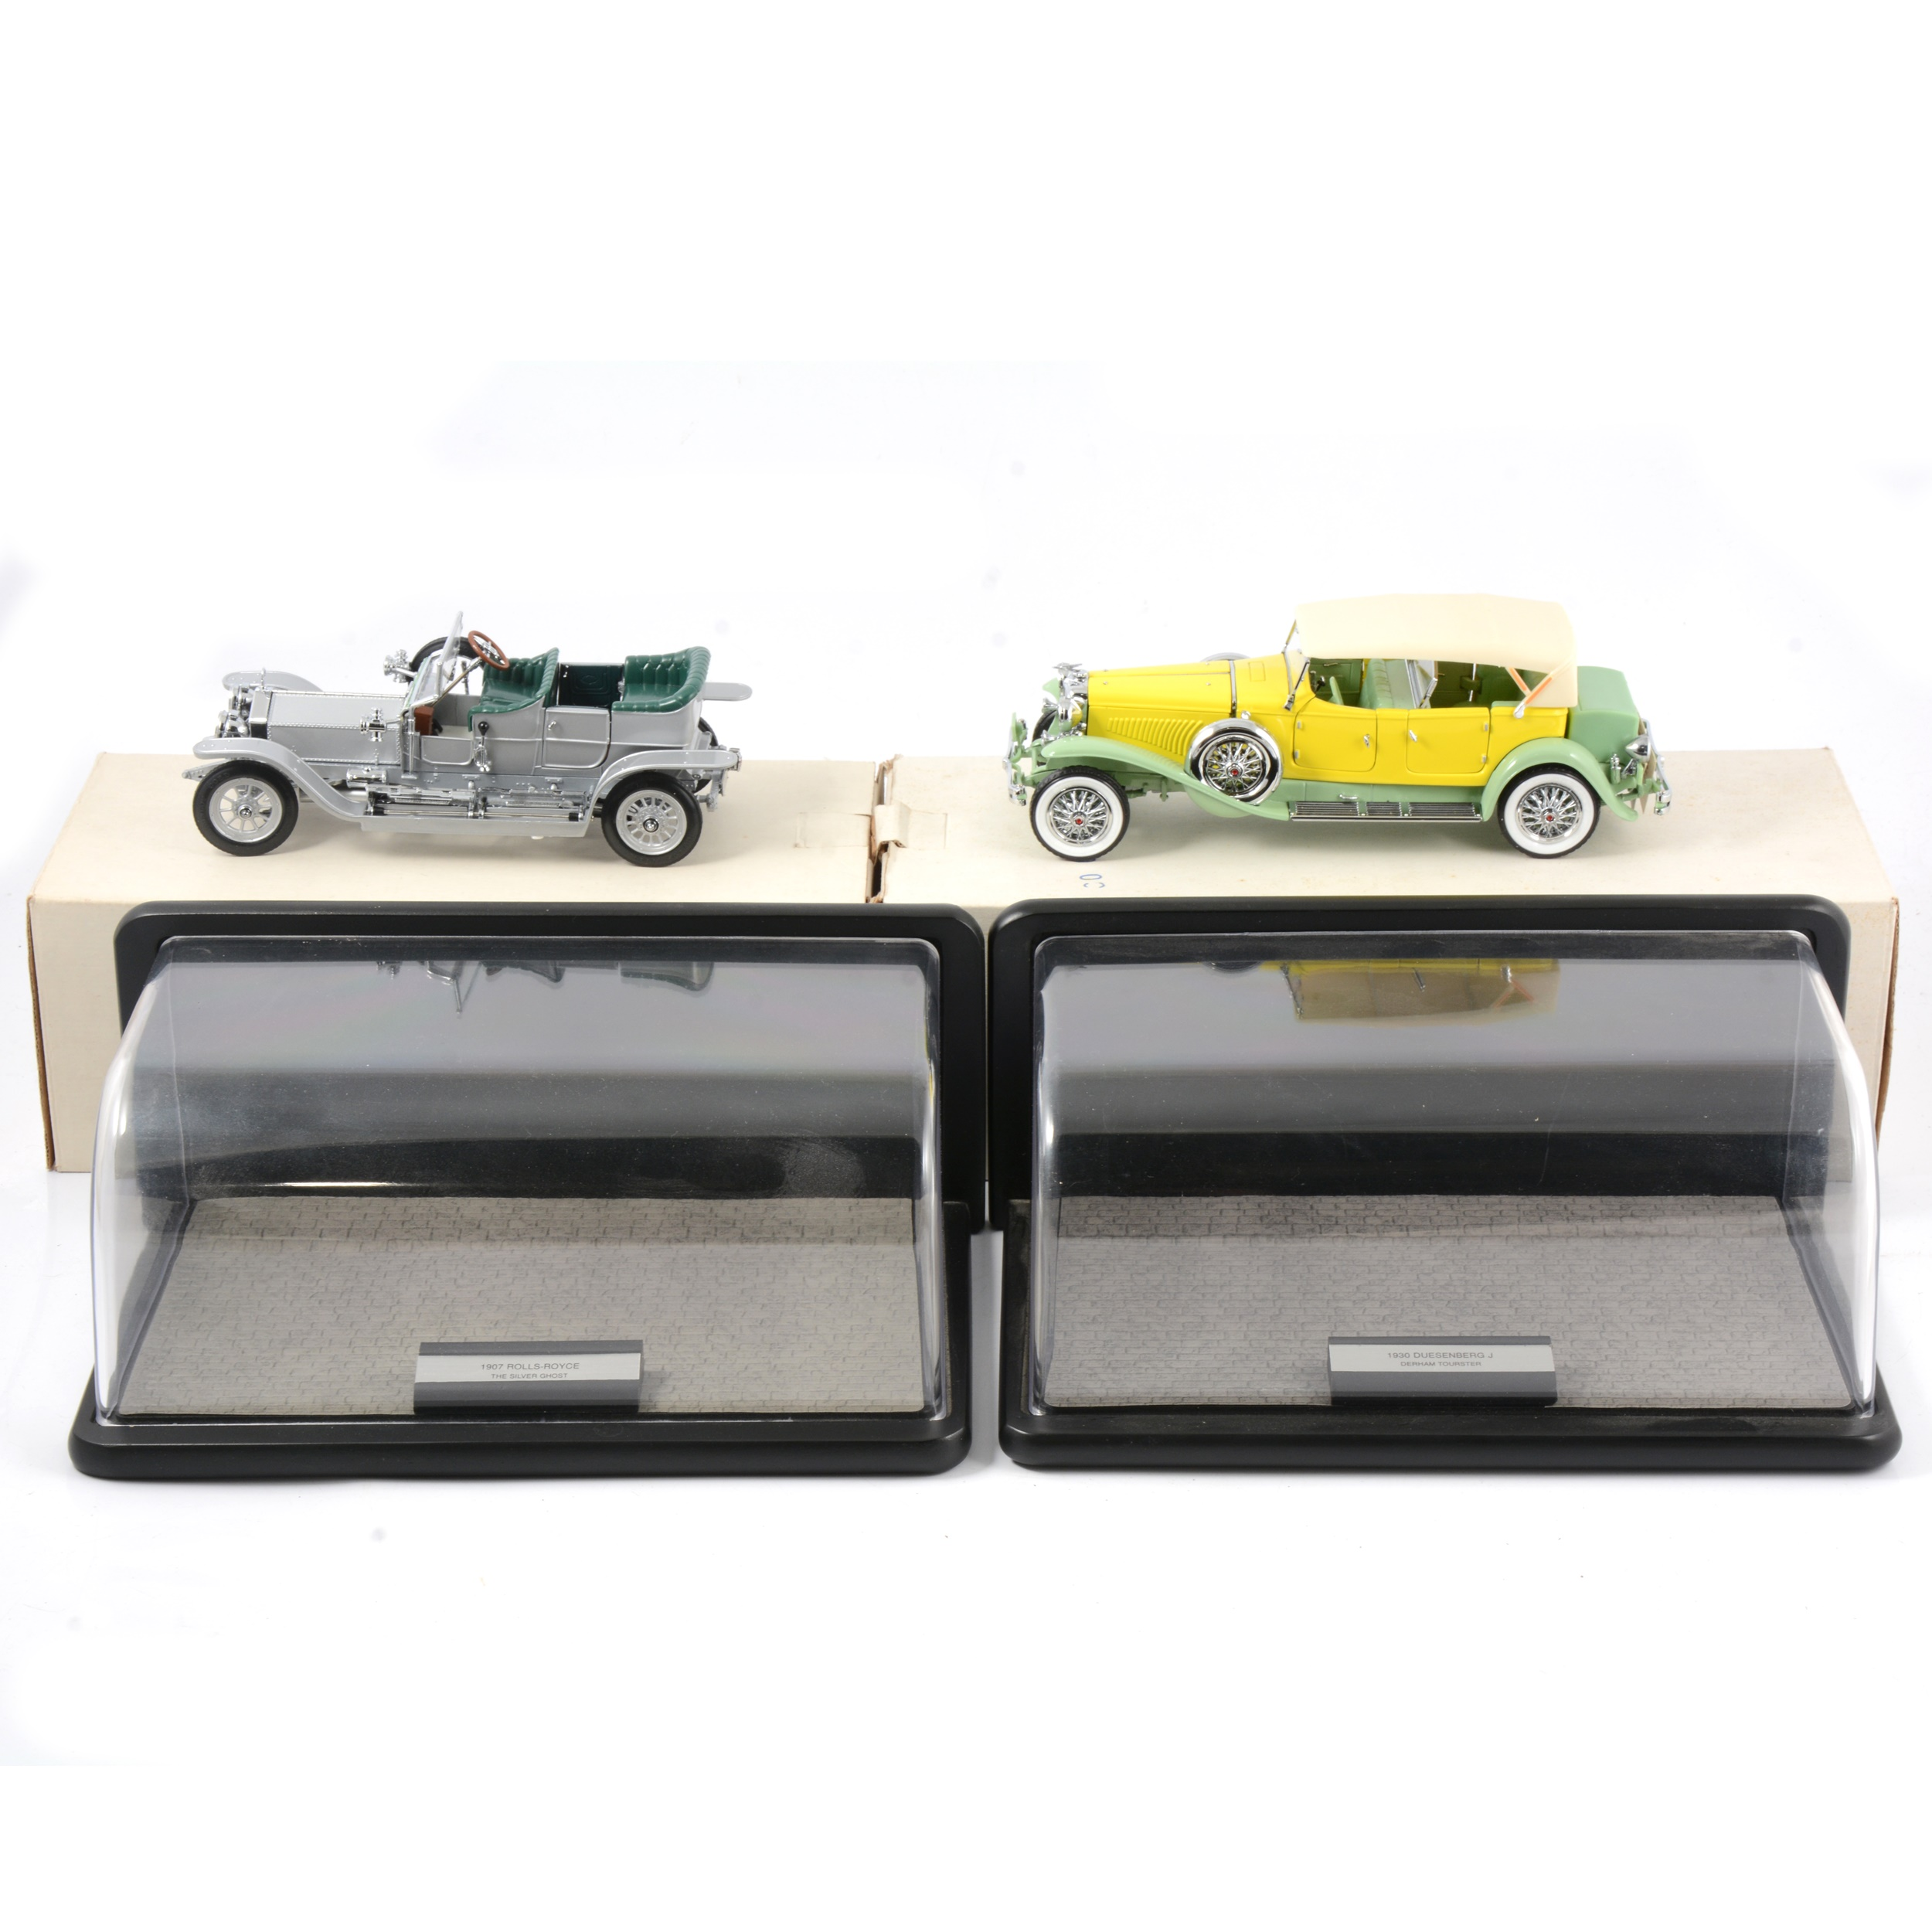 Franklin Mint 1:24 scale models, Rolls Royce The Silver Ghost and Dusenberg J